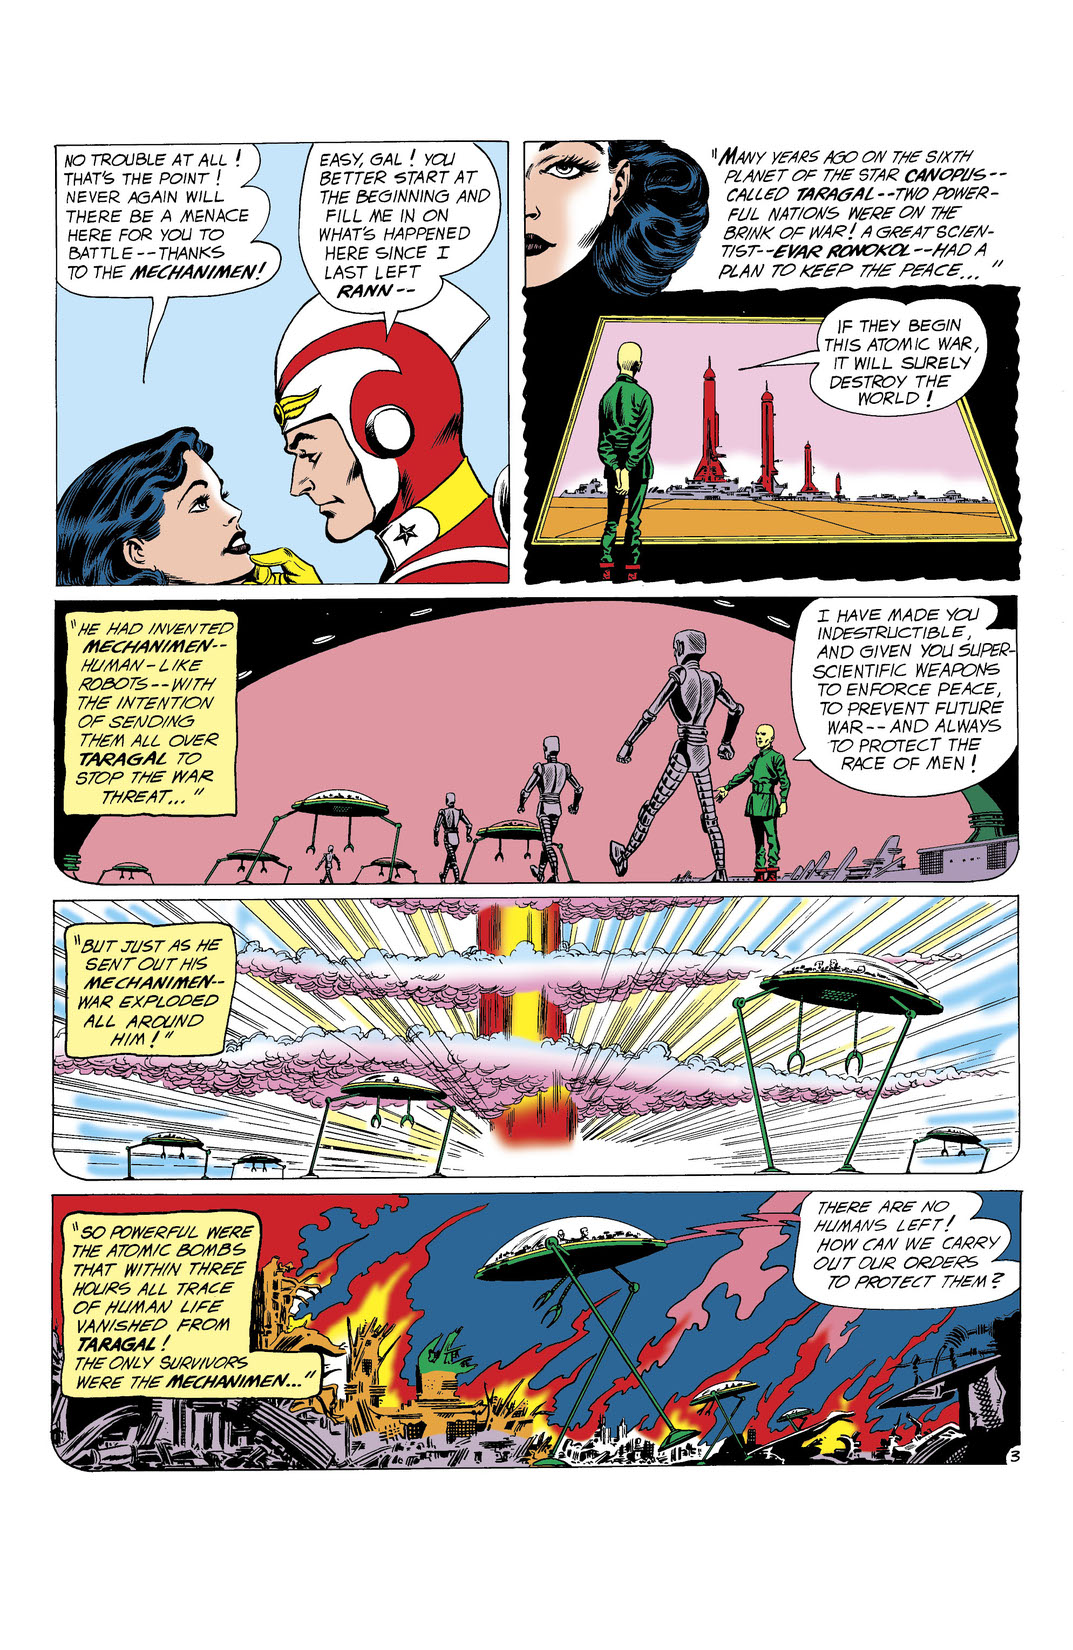 Read Mystery in Space (1951-) #65 on DC Universe